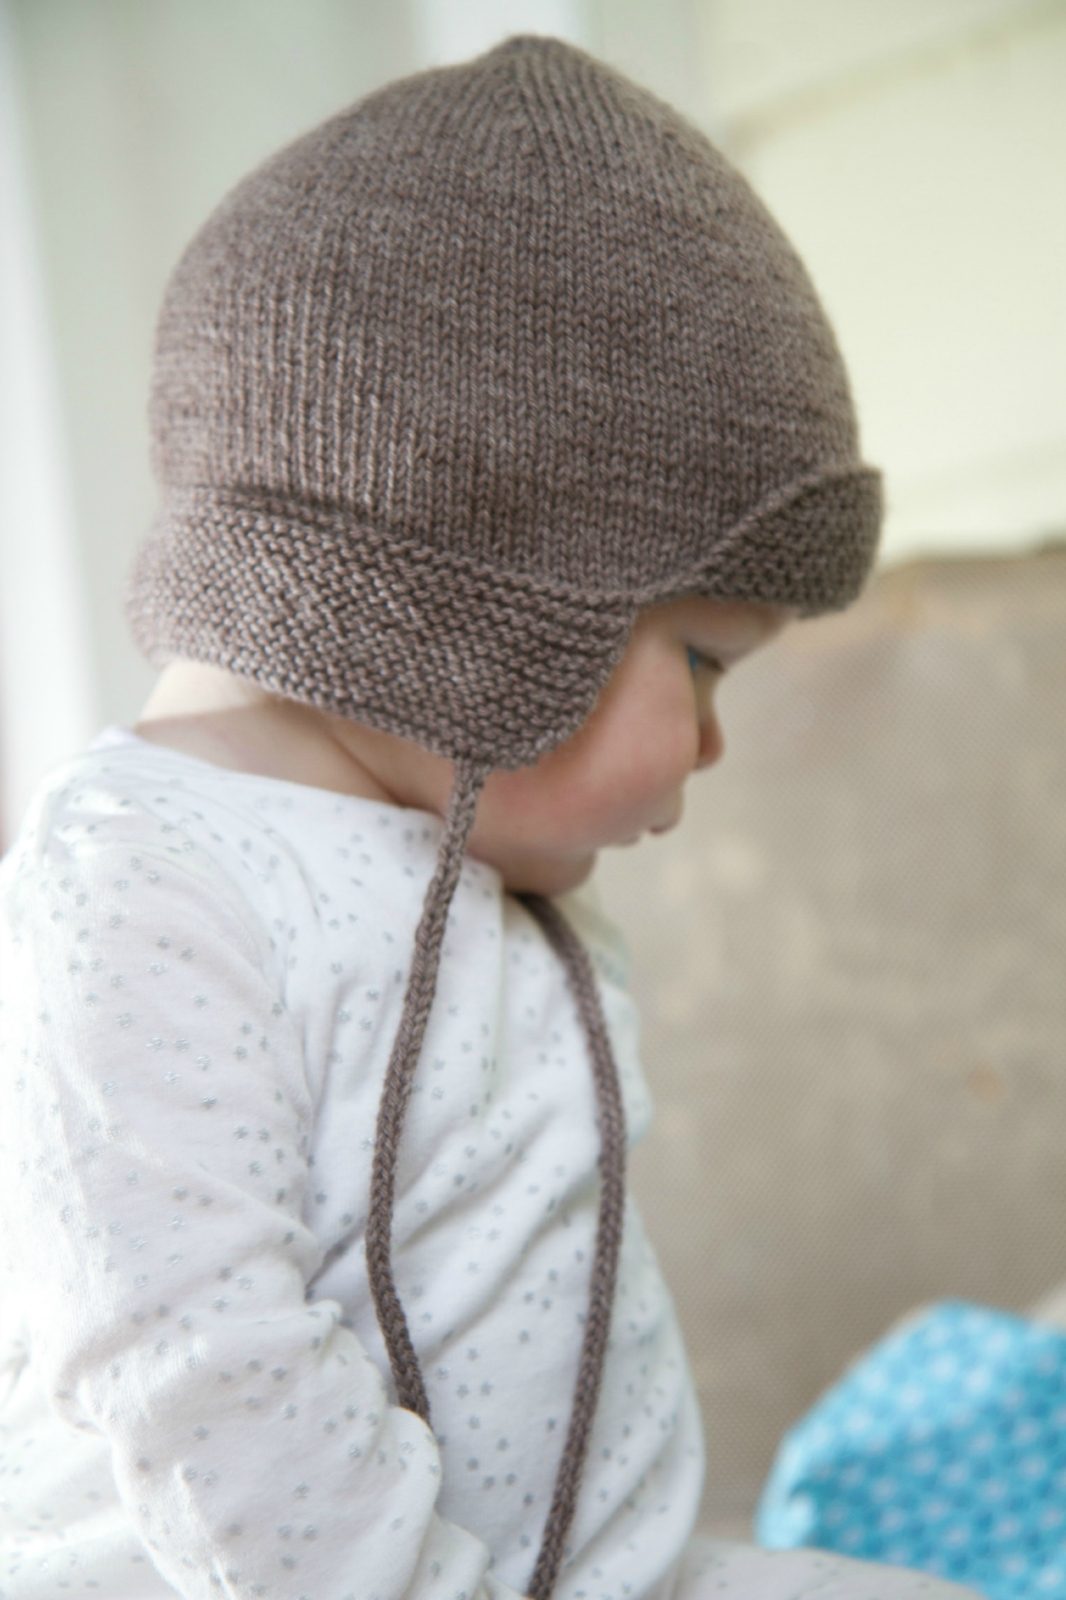 4ply Baby Hunter Hat - Baby Cakes by Little Cupcakes - Bc47 | Felt